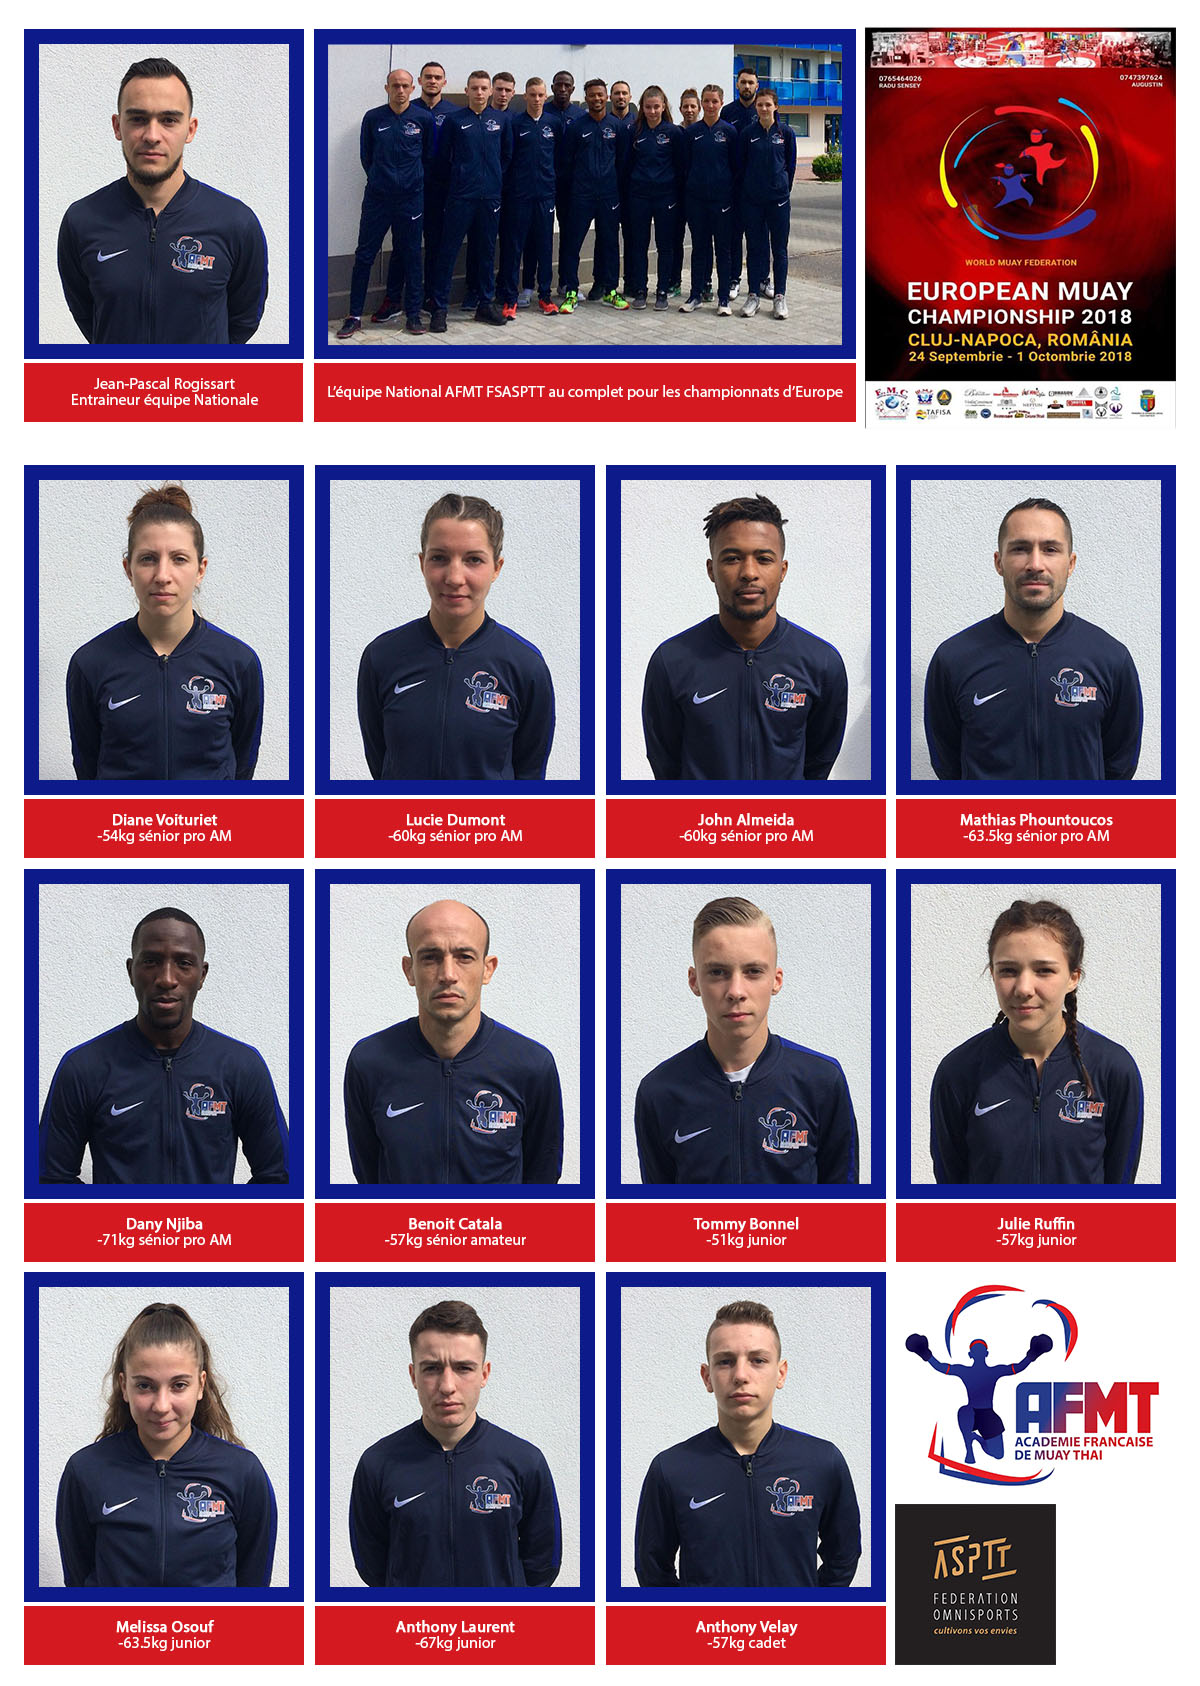 equipe nationale 2018